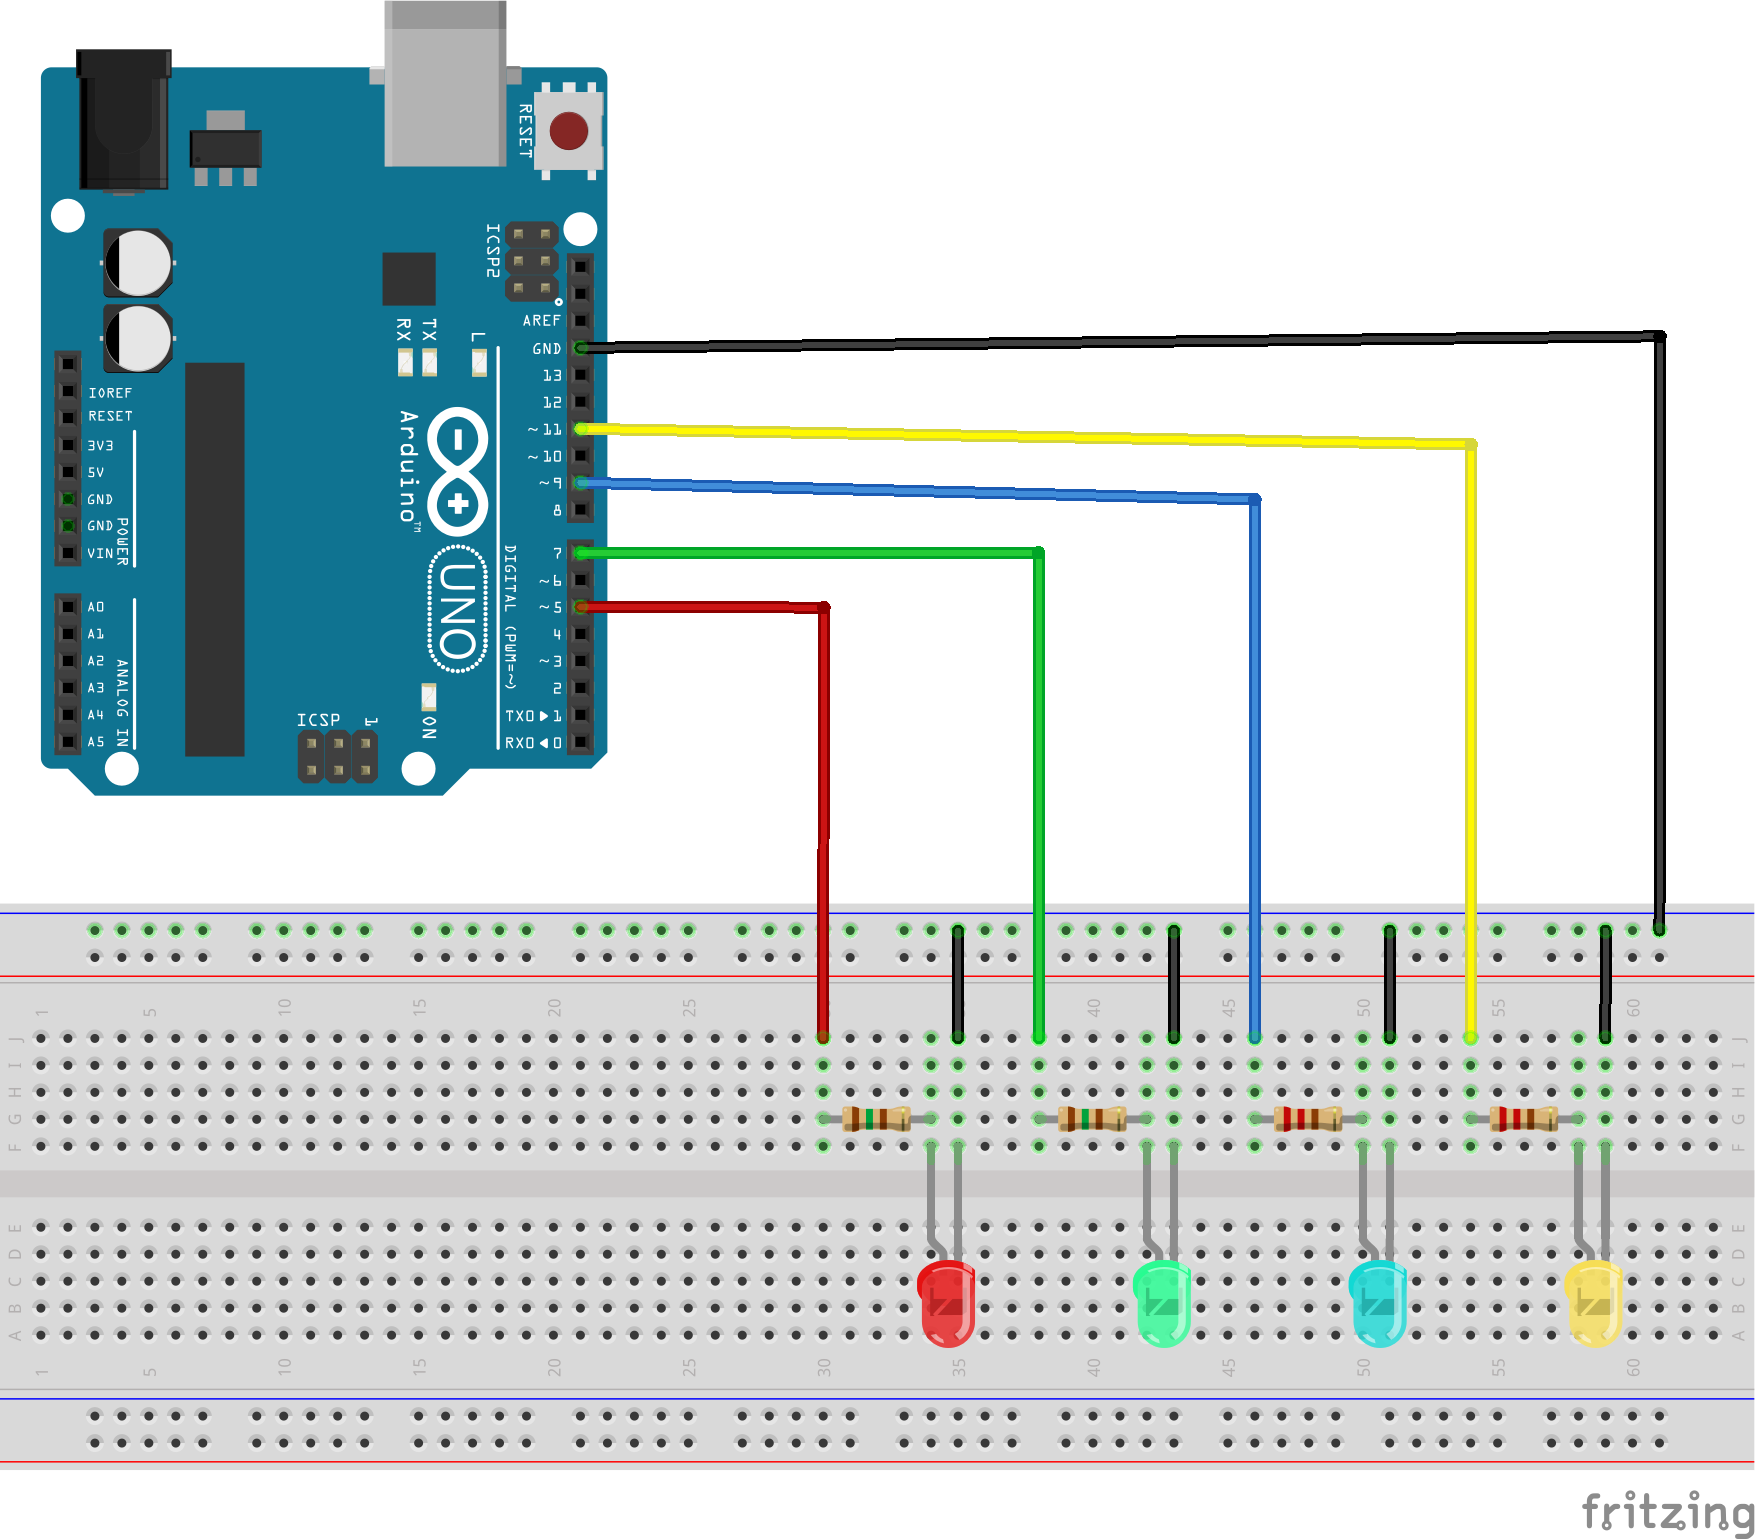 HashMaps - Associative Arrays with the Arduino Programming